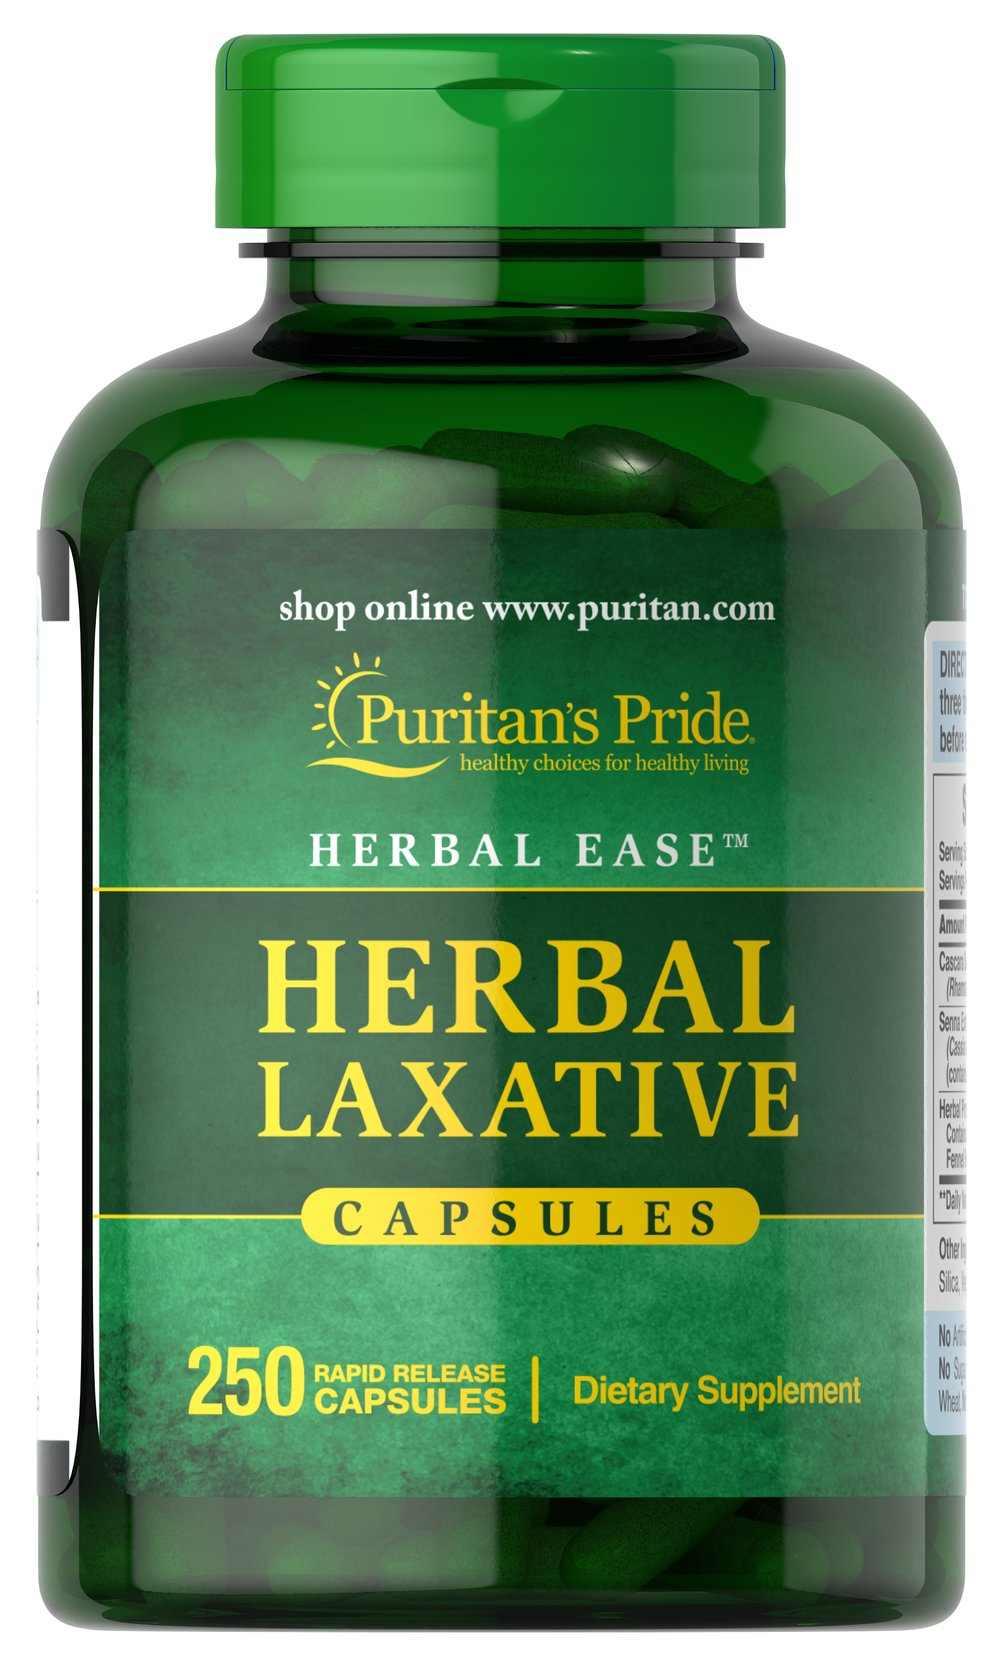 Herbal Laxative <p><b>Herbal Laxative</b> Capsules are an all-natural laxative designed to help with occasional constipation.** Our formula brings together the holistic properties of Cascara Sagrada and Senna, two popular herbals that help promote regularity.**</p><p>Herbal Laxative Capsules contain no harsh synthetics, to assure gentle, yet efficient, cleansing.**</p> <p>Also available in Tablets. See items #30329, 30330 and 30331.</p> 250 Capsule